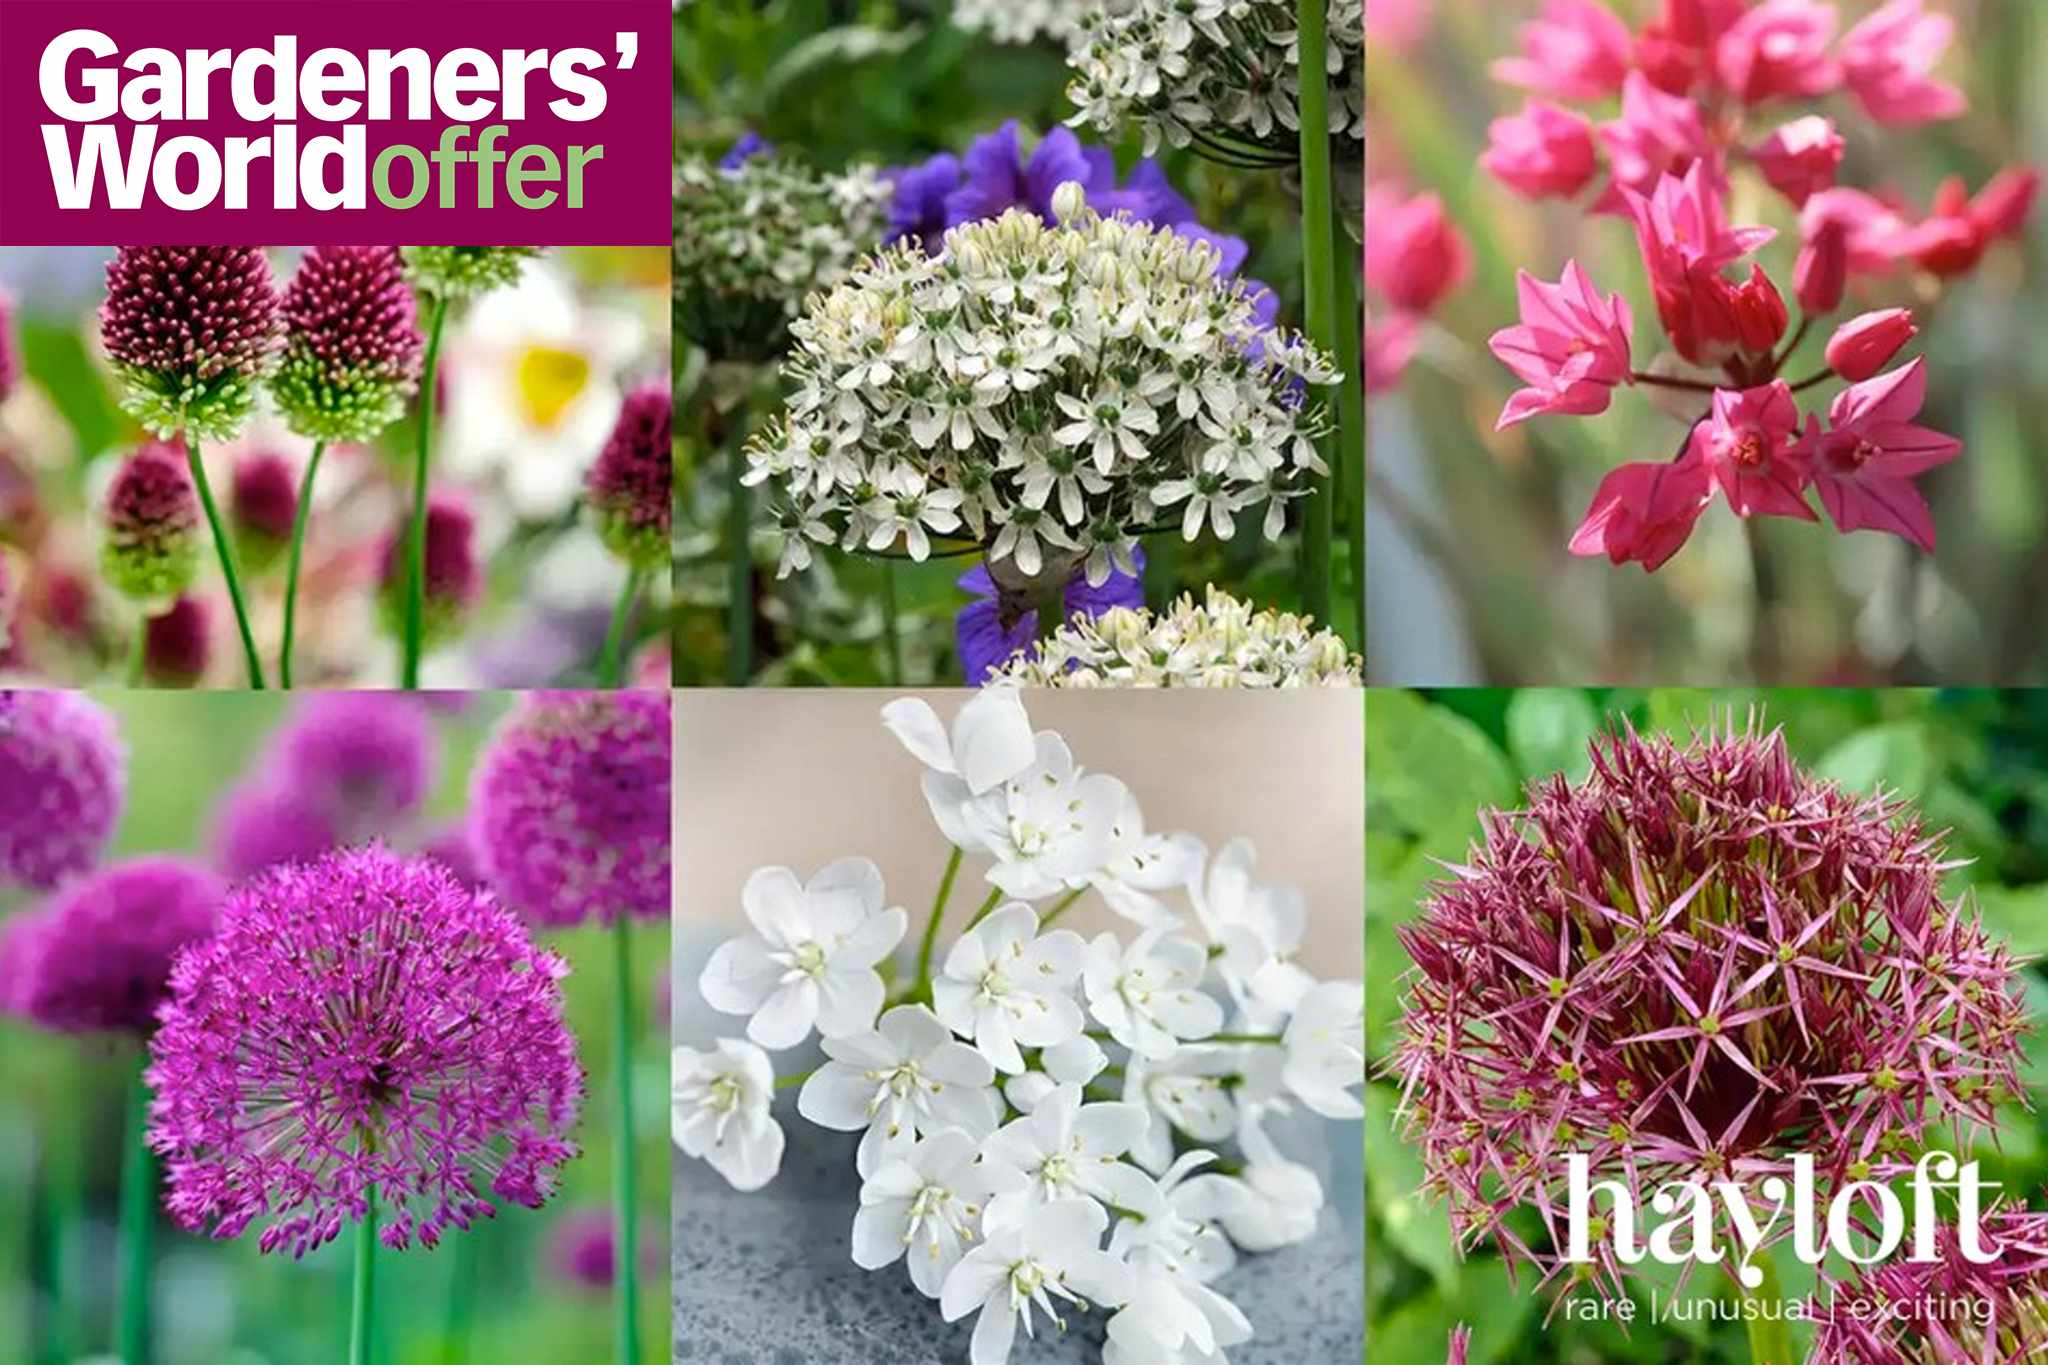 100 allium bulbs for only £20 at Hayloft